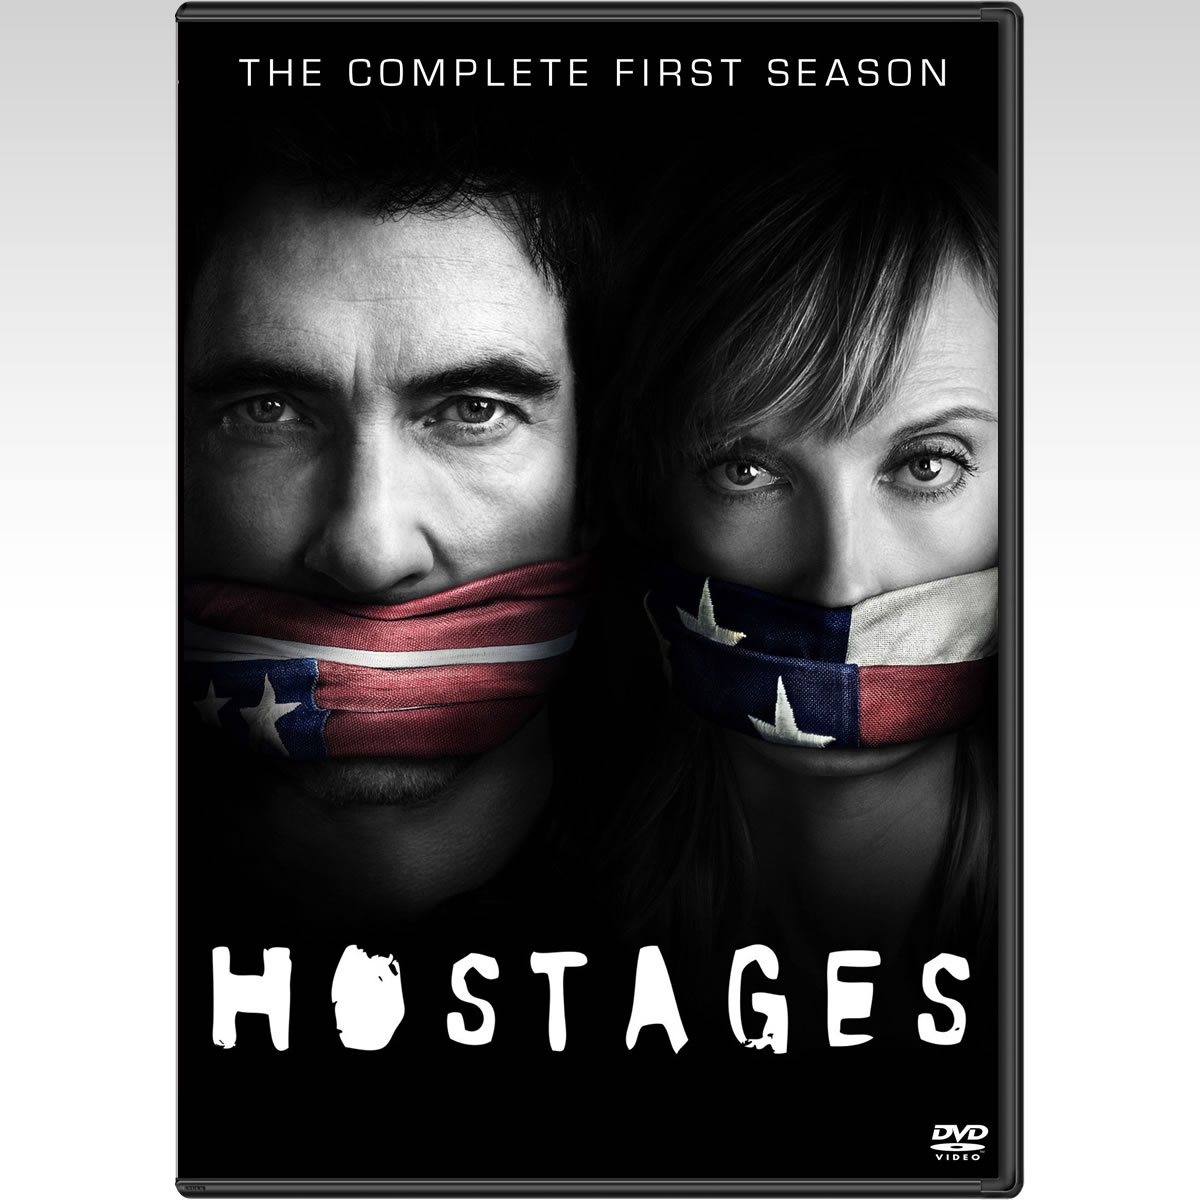 HOSTAGES: THE COMPLETE 1st SEASON - HOSTAGES: 1η ΠΕΡΙΟΔΟΣ (3 DVDs)